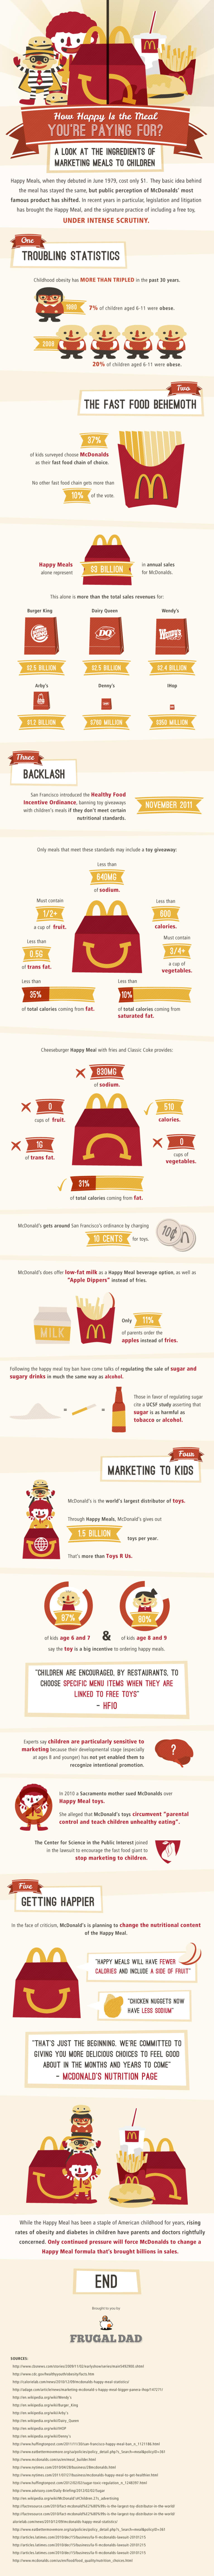 Disturbing Facts About Happy Meals (Infographic)